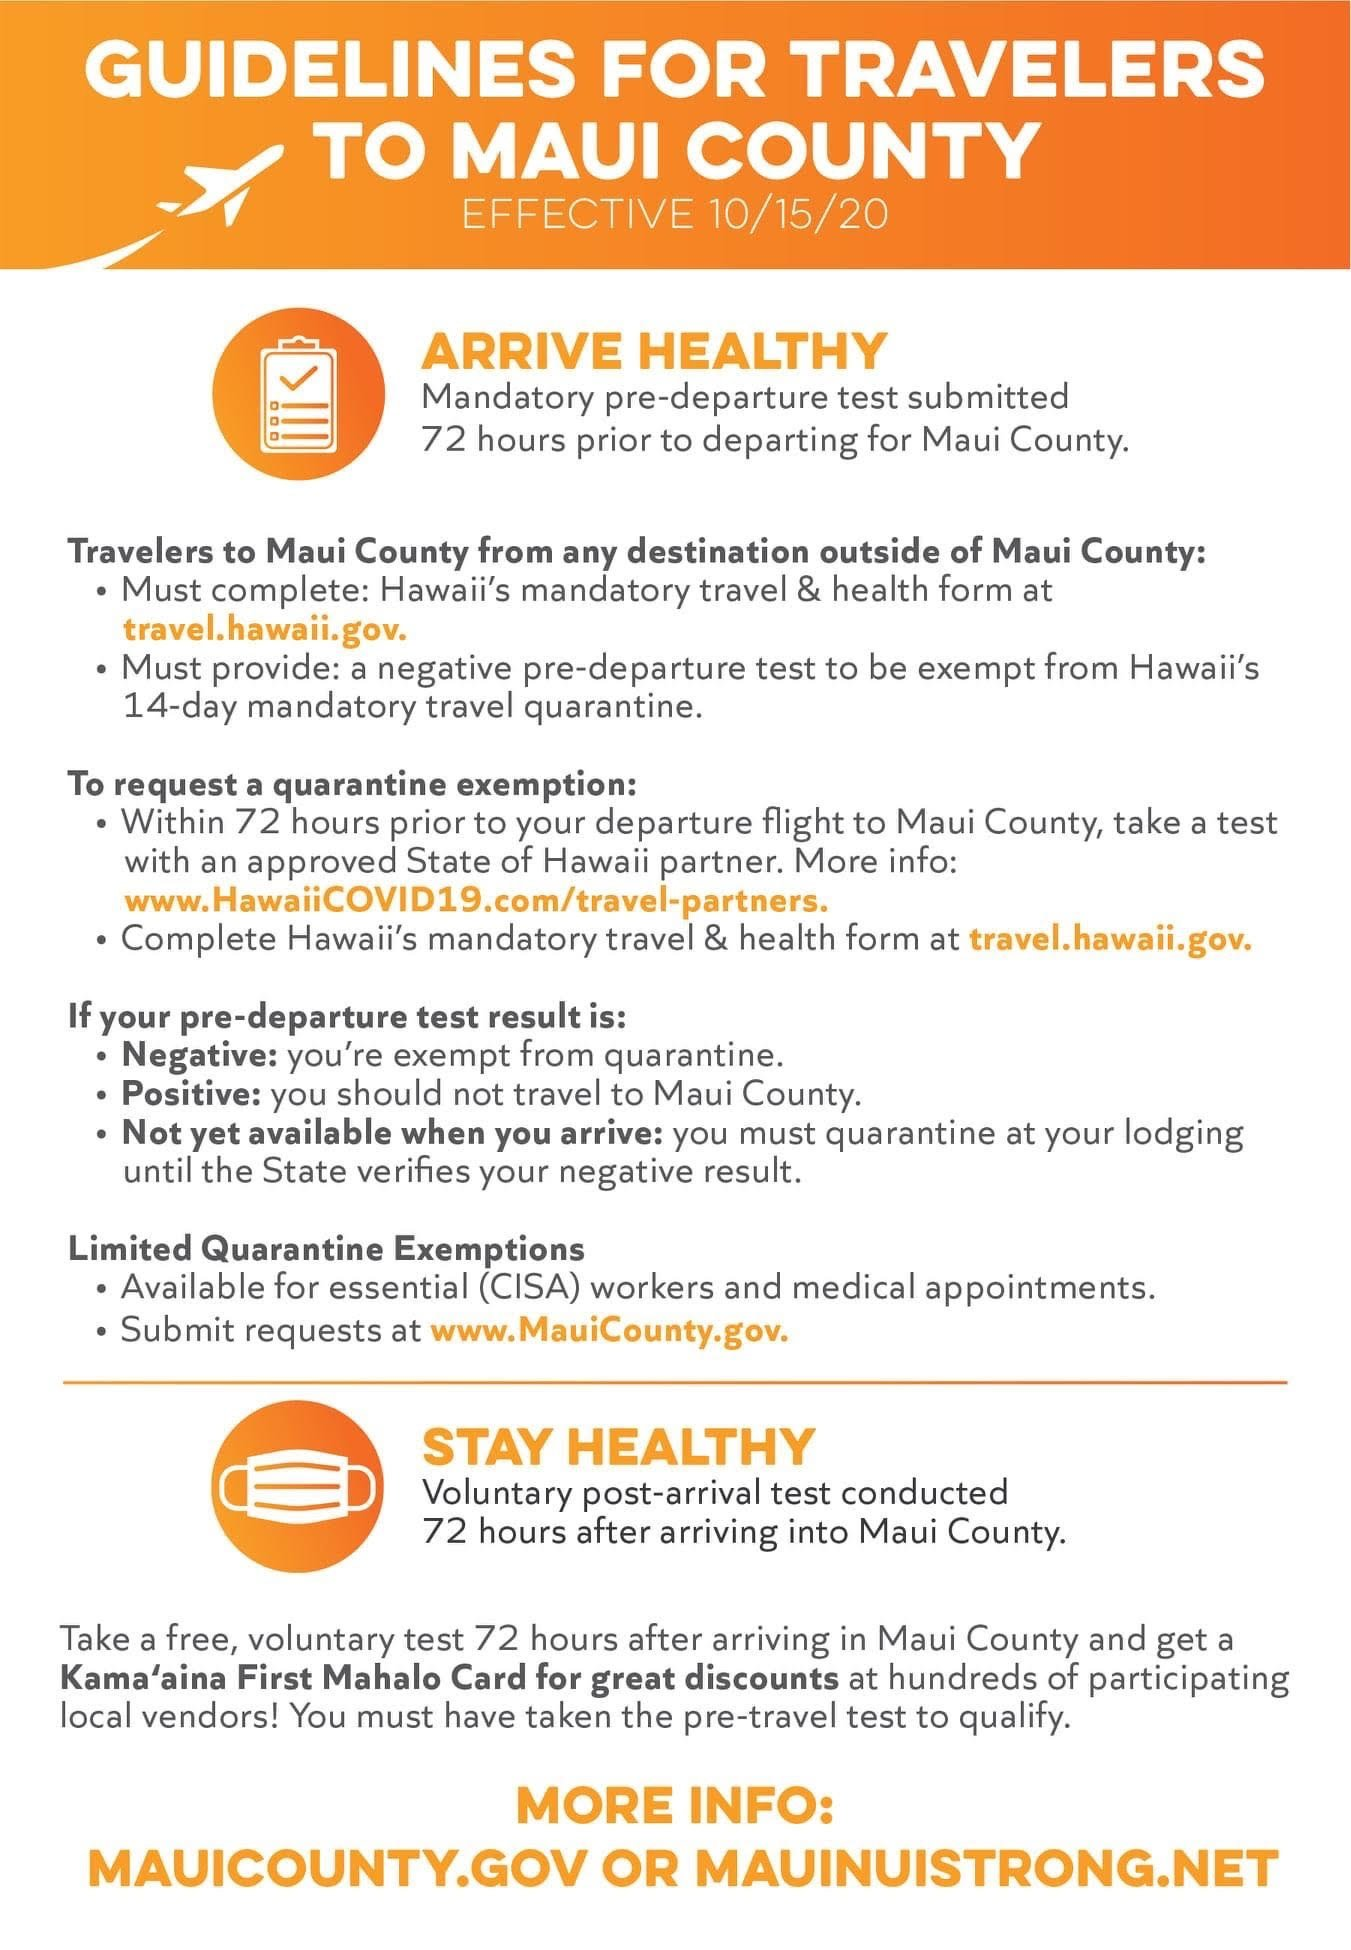 Guidelines for Traveling to Maui